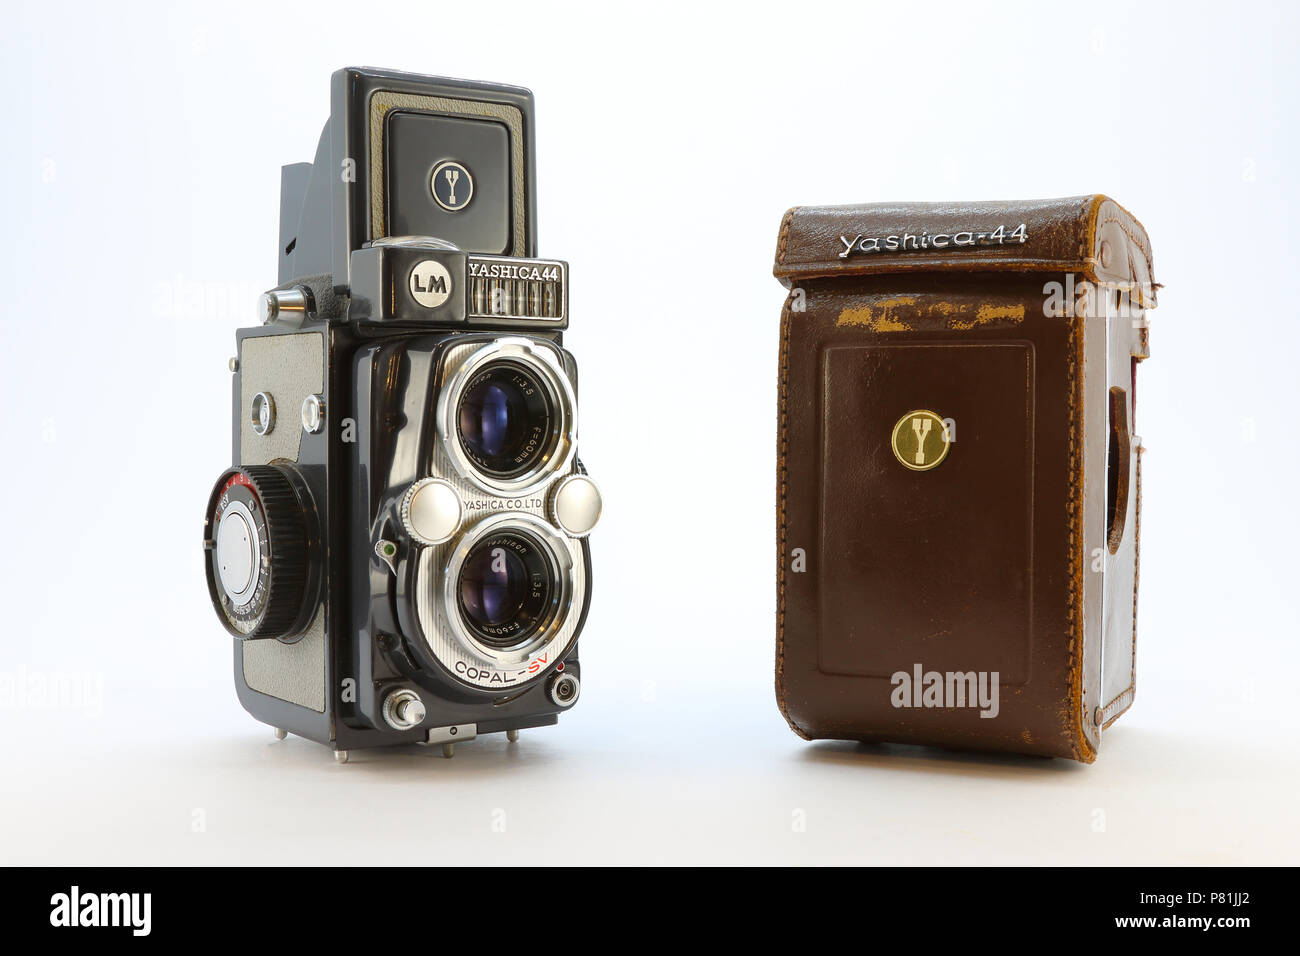 Yashica-44LM from the 1950's with case - Stock Image